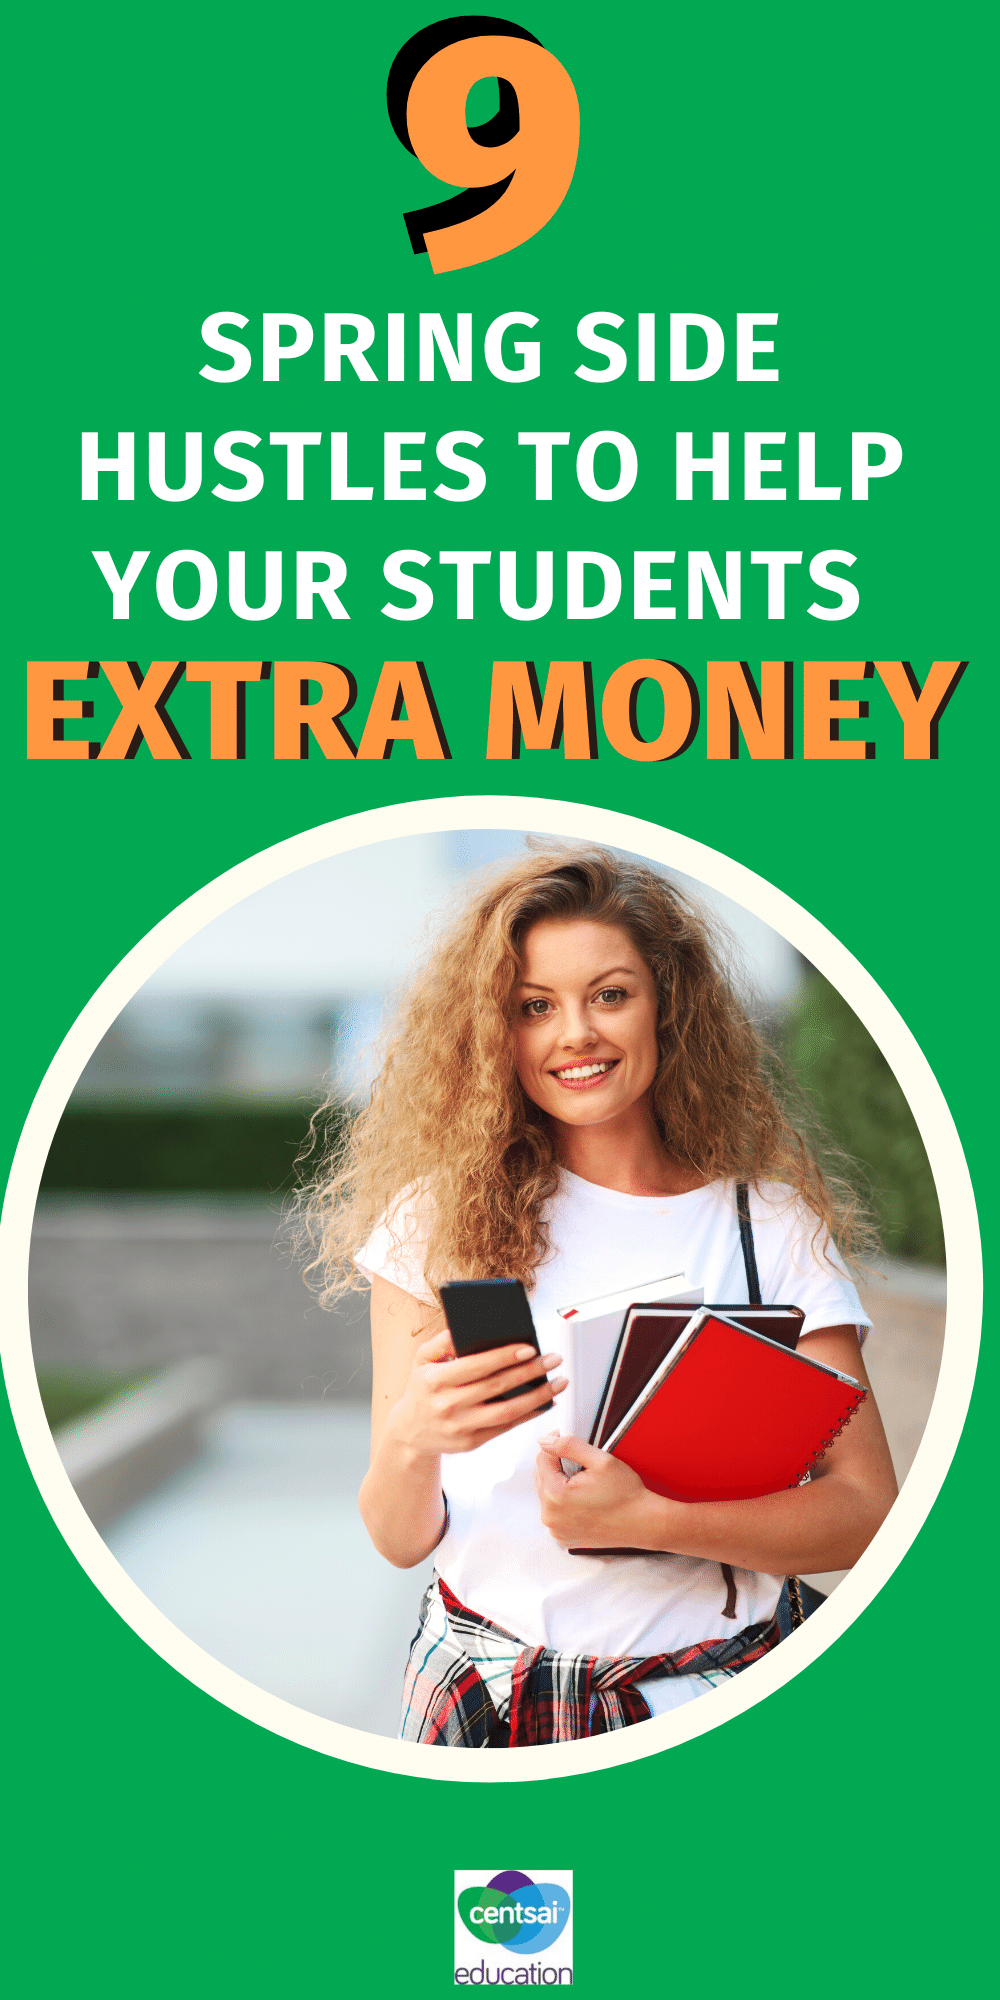 From tutoring to lawn care here are nine practical ways your students can earn some extra money this spring!